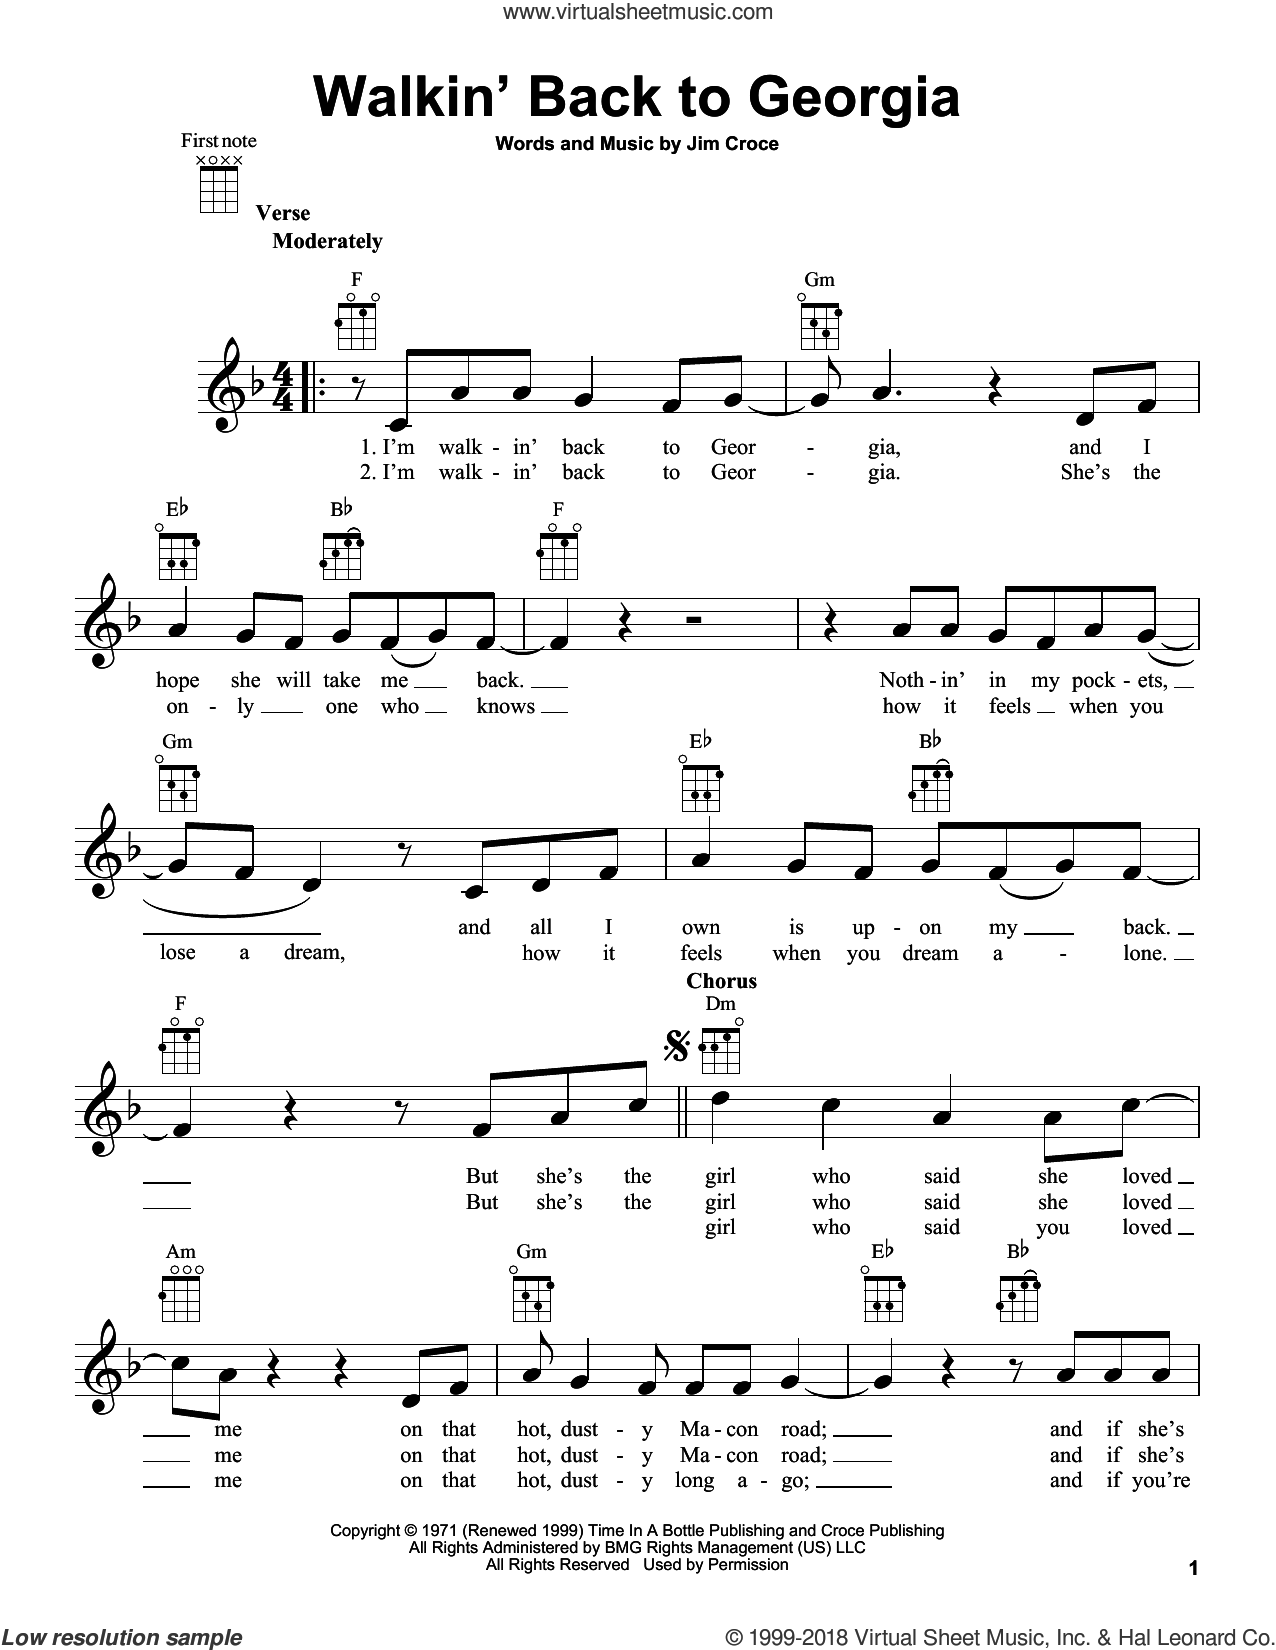 Walkin' Back To Georgia sheet music for ukulele by Jim Croce, intermediate skill level